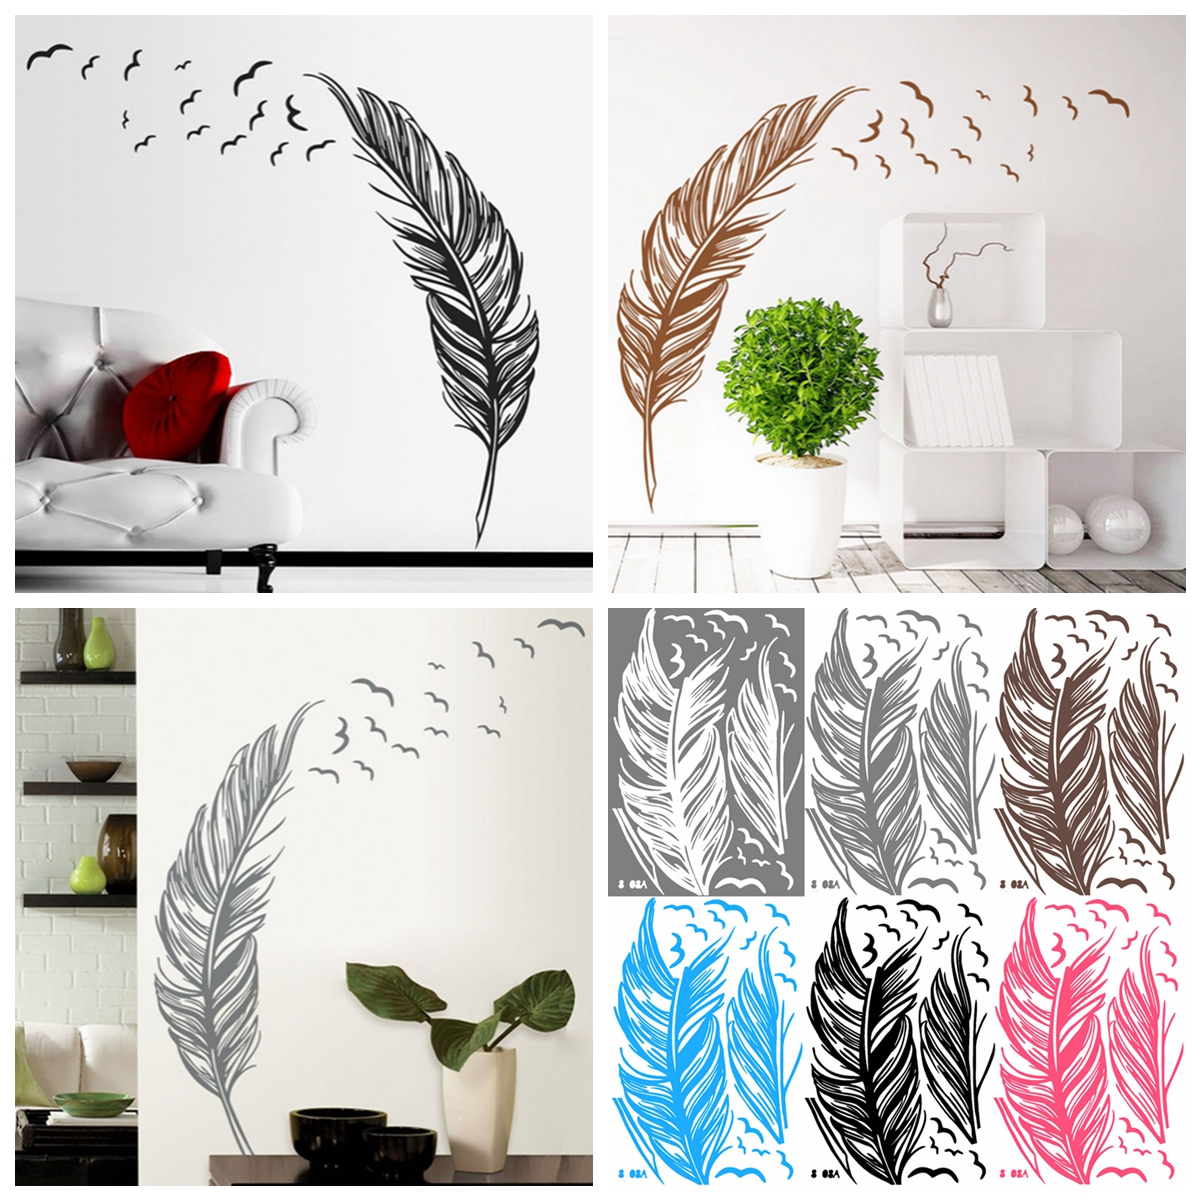 Wall Sticker Vinyl Birds Flying Feather Removable Home Decal Mural Art Decor